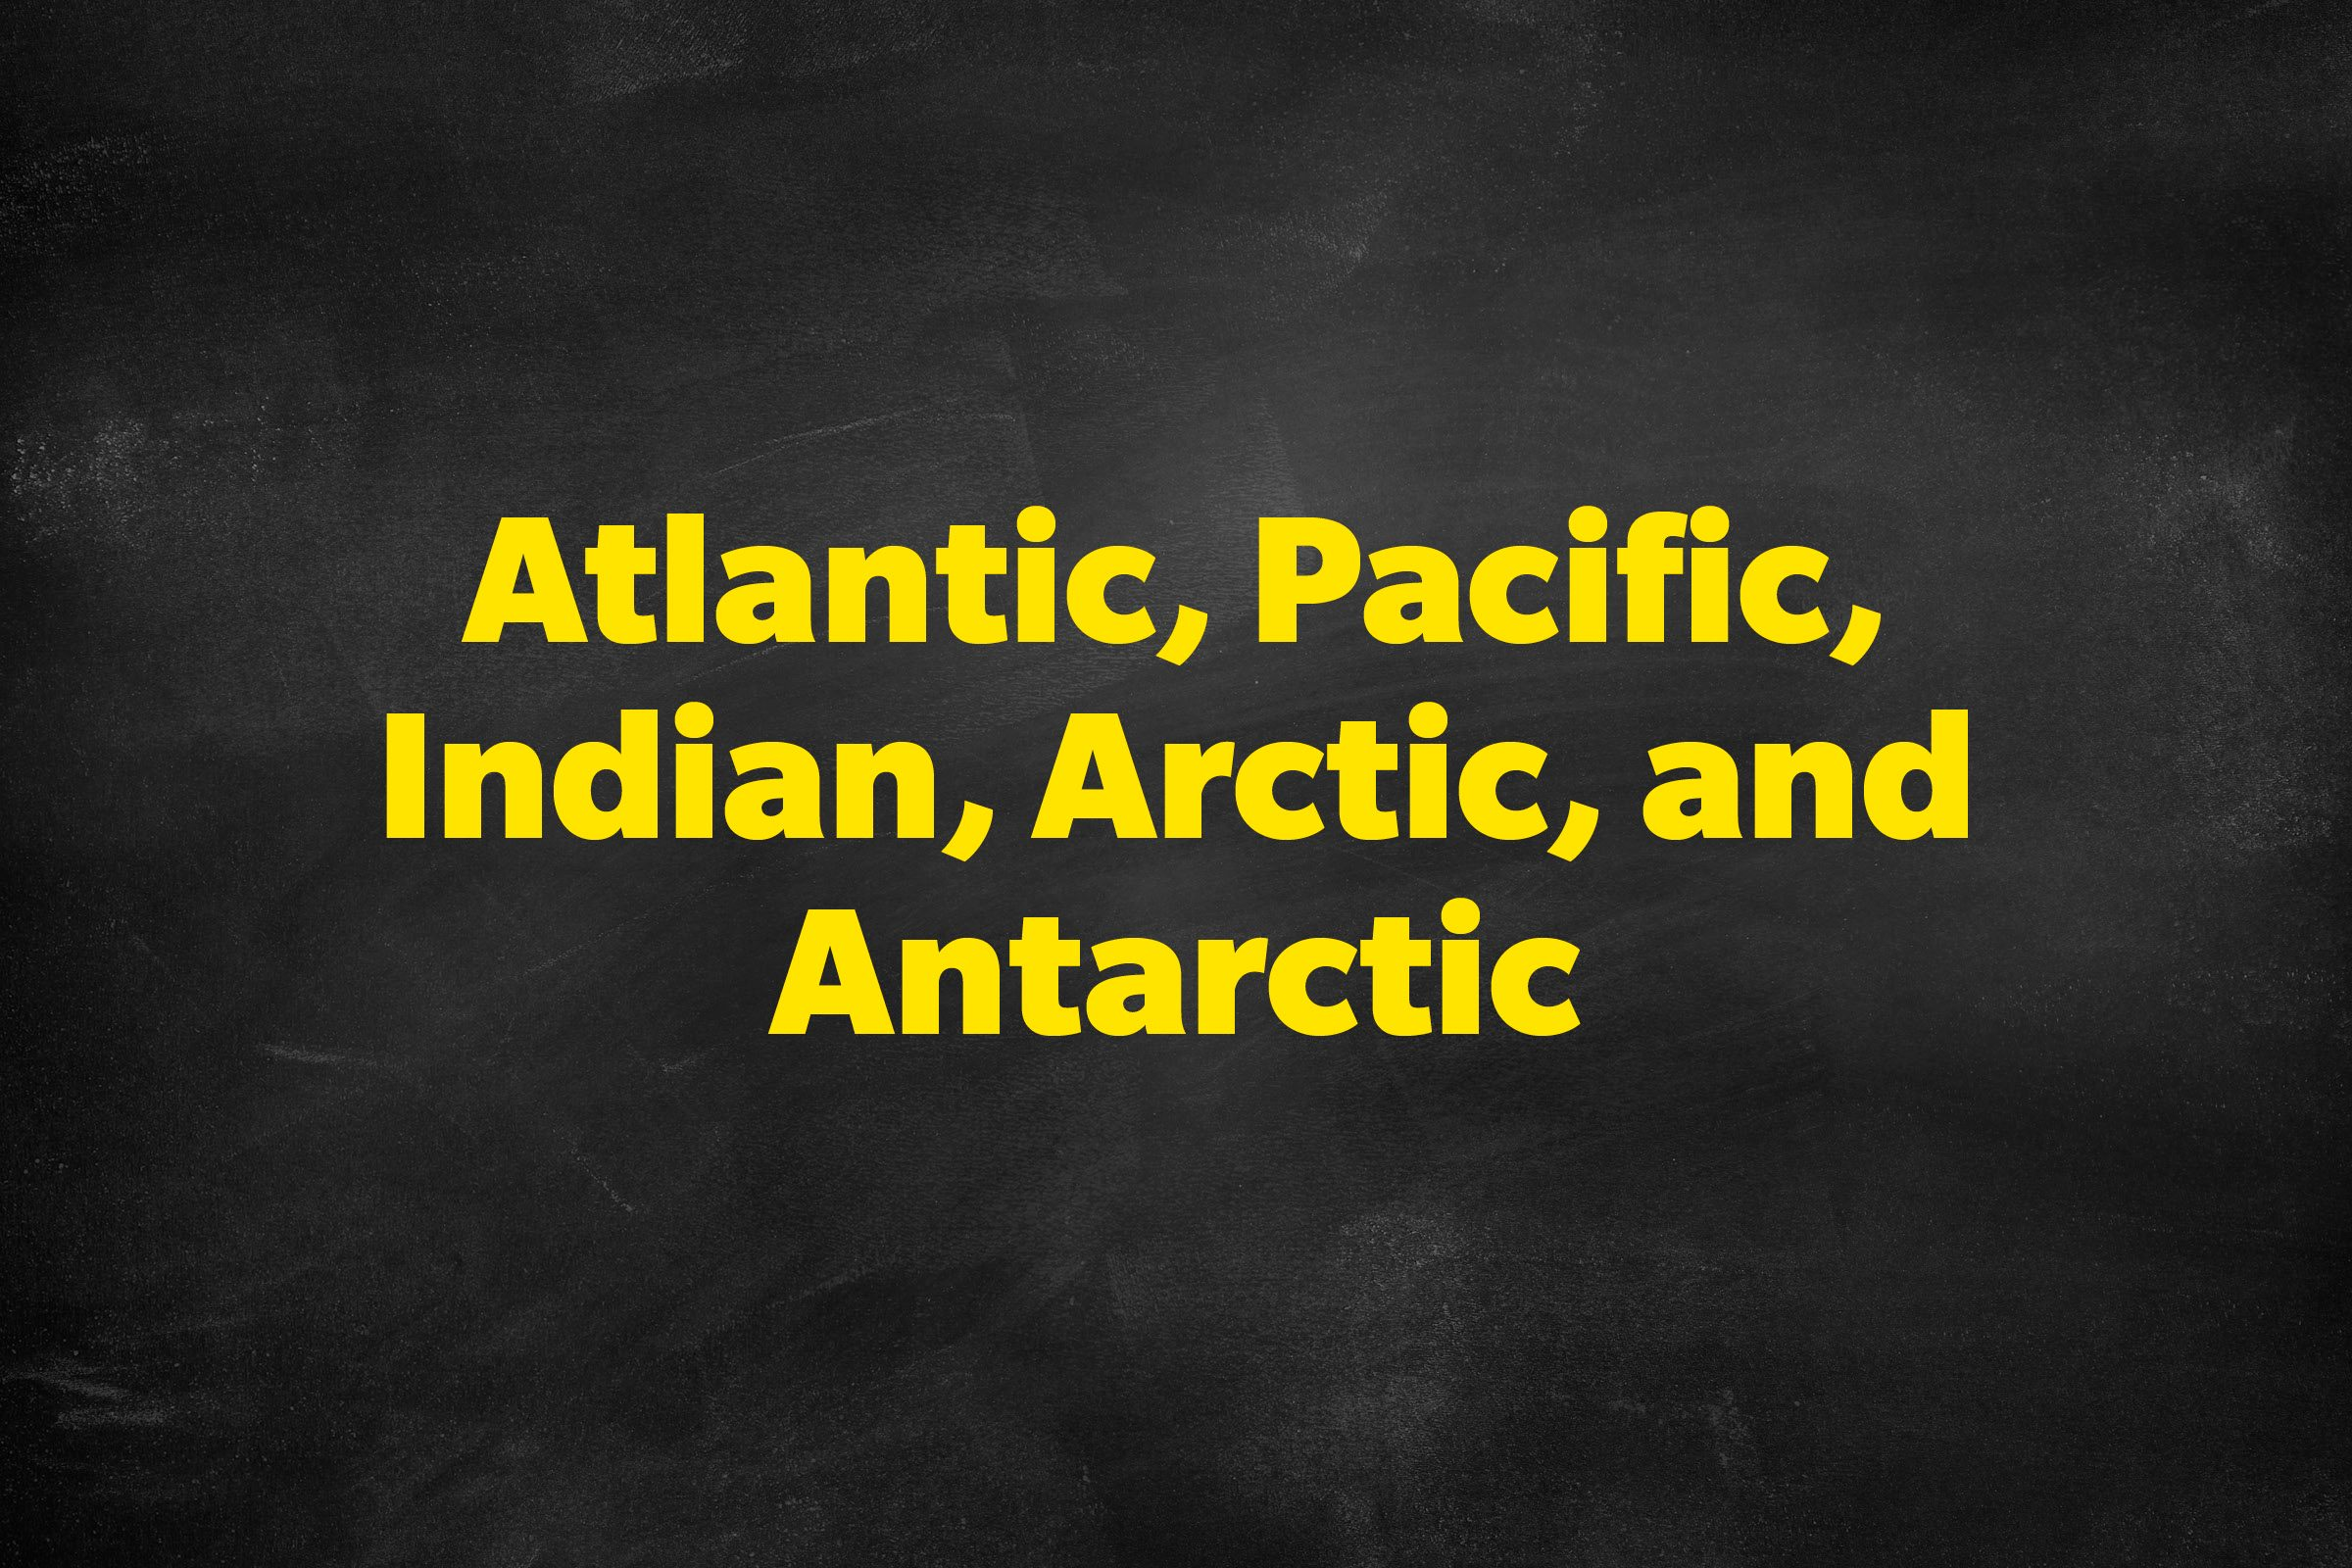 Answer: Atlantic, Pacific, Indian, Arctic, and Antarctic